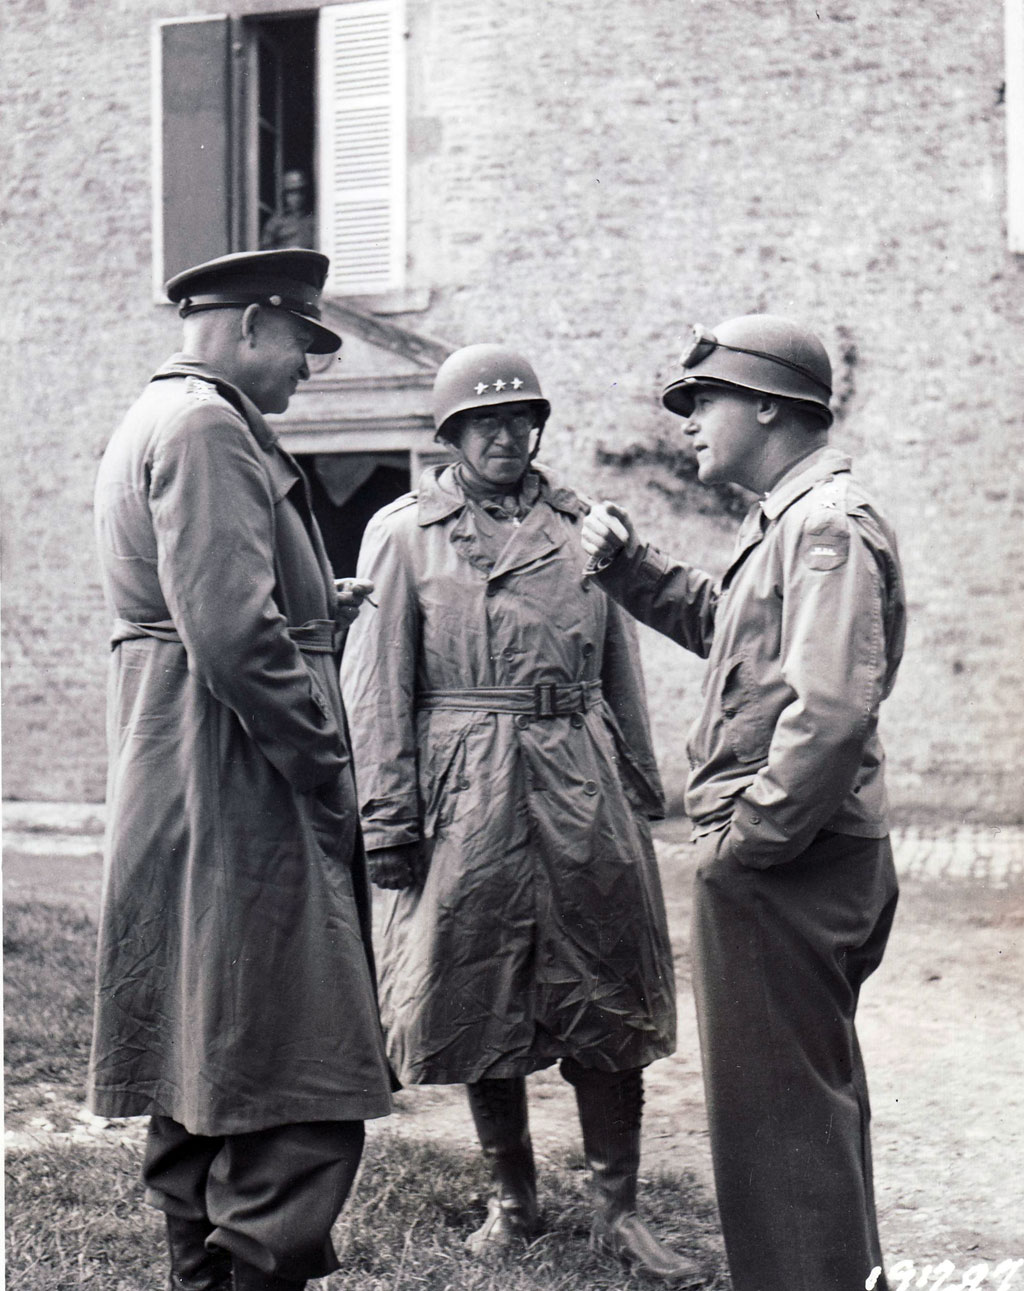 Eisenhower and Bradley listen to Major General J. Lawton Collins, right, commander of the U.S. VII Corps, shortly after the capture of Cherbourg.